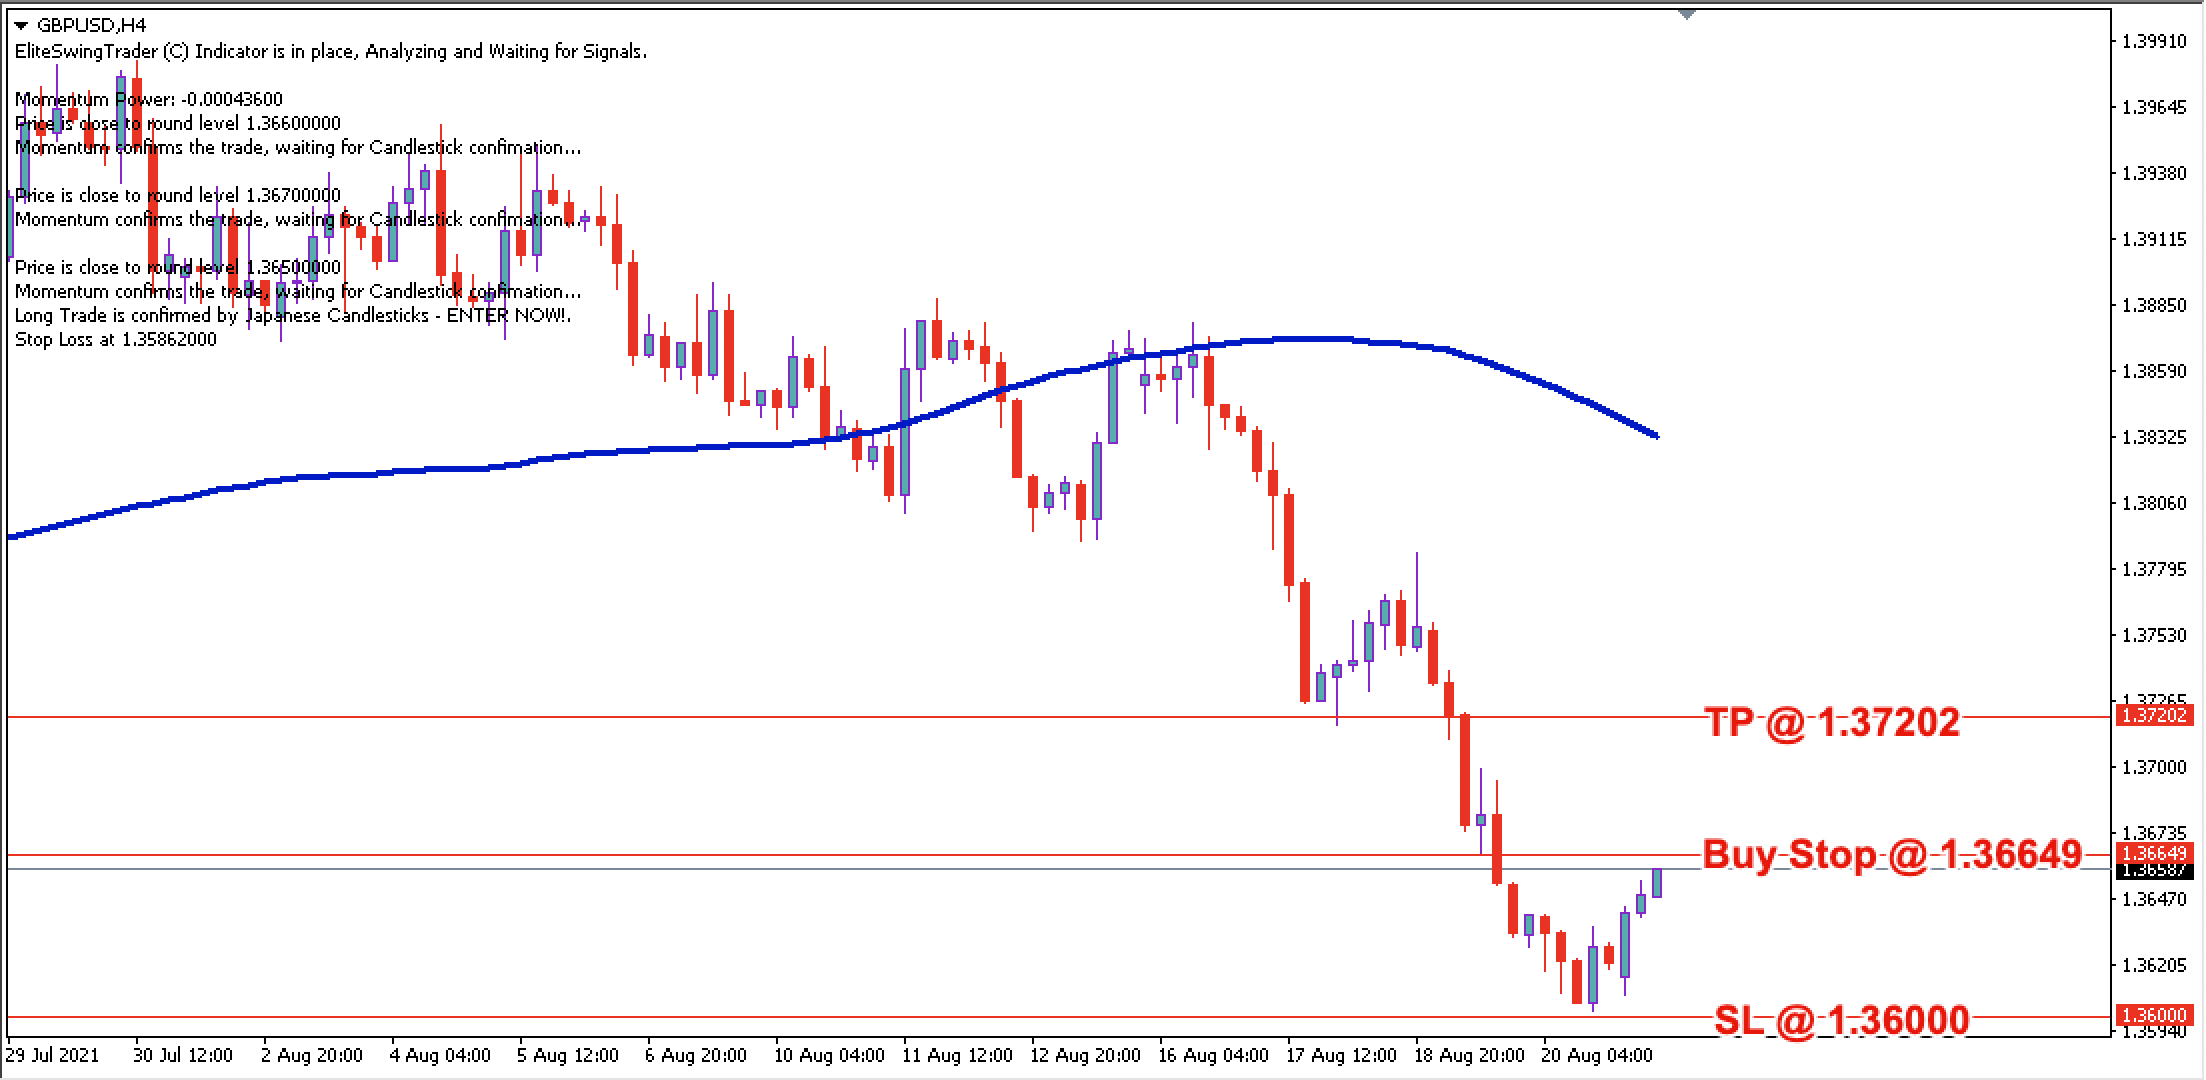 GBP/USD Daily Price Forecast – 23rd August 2021